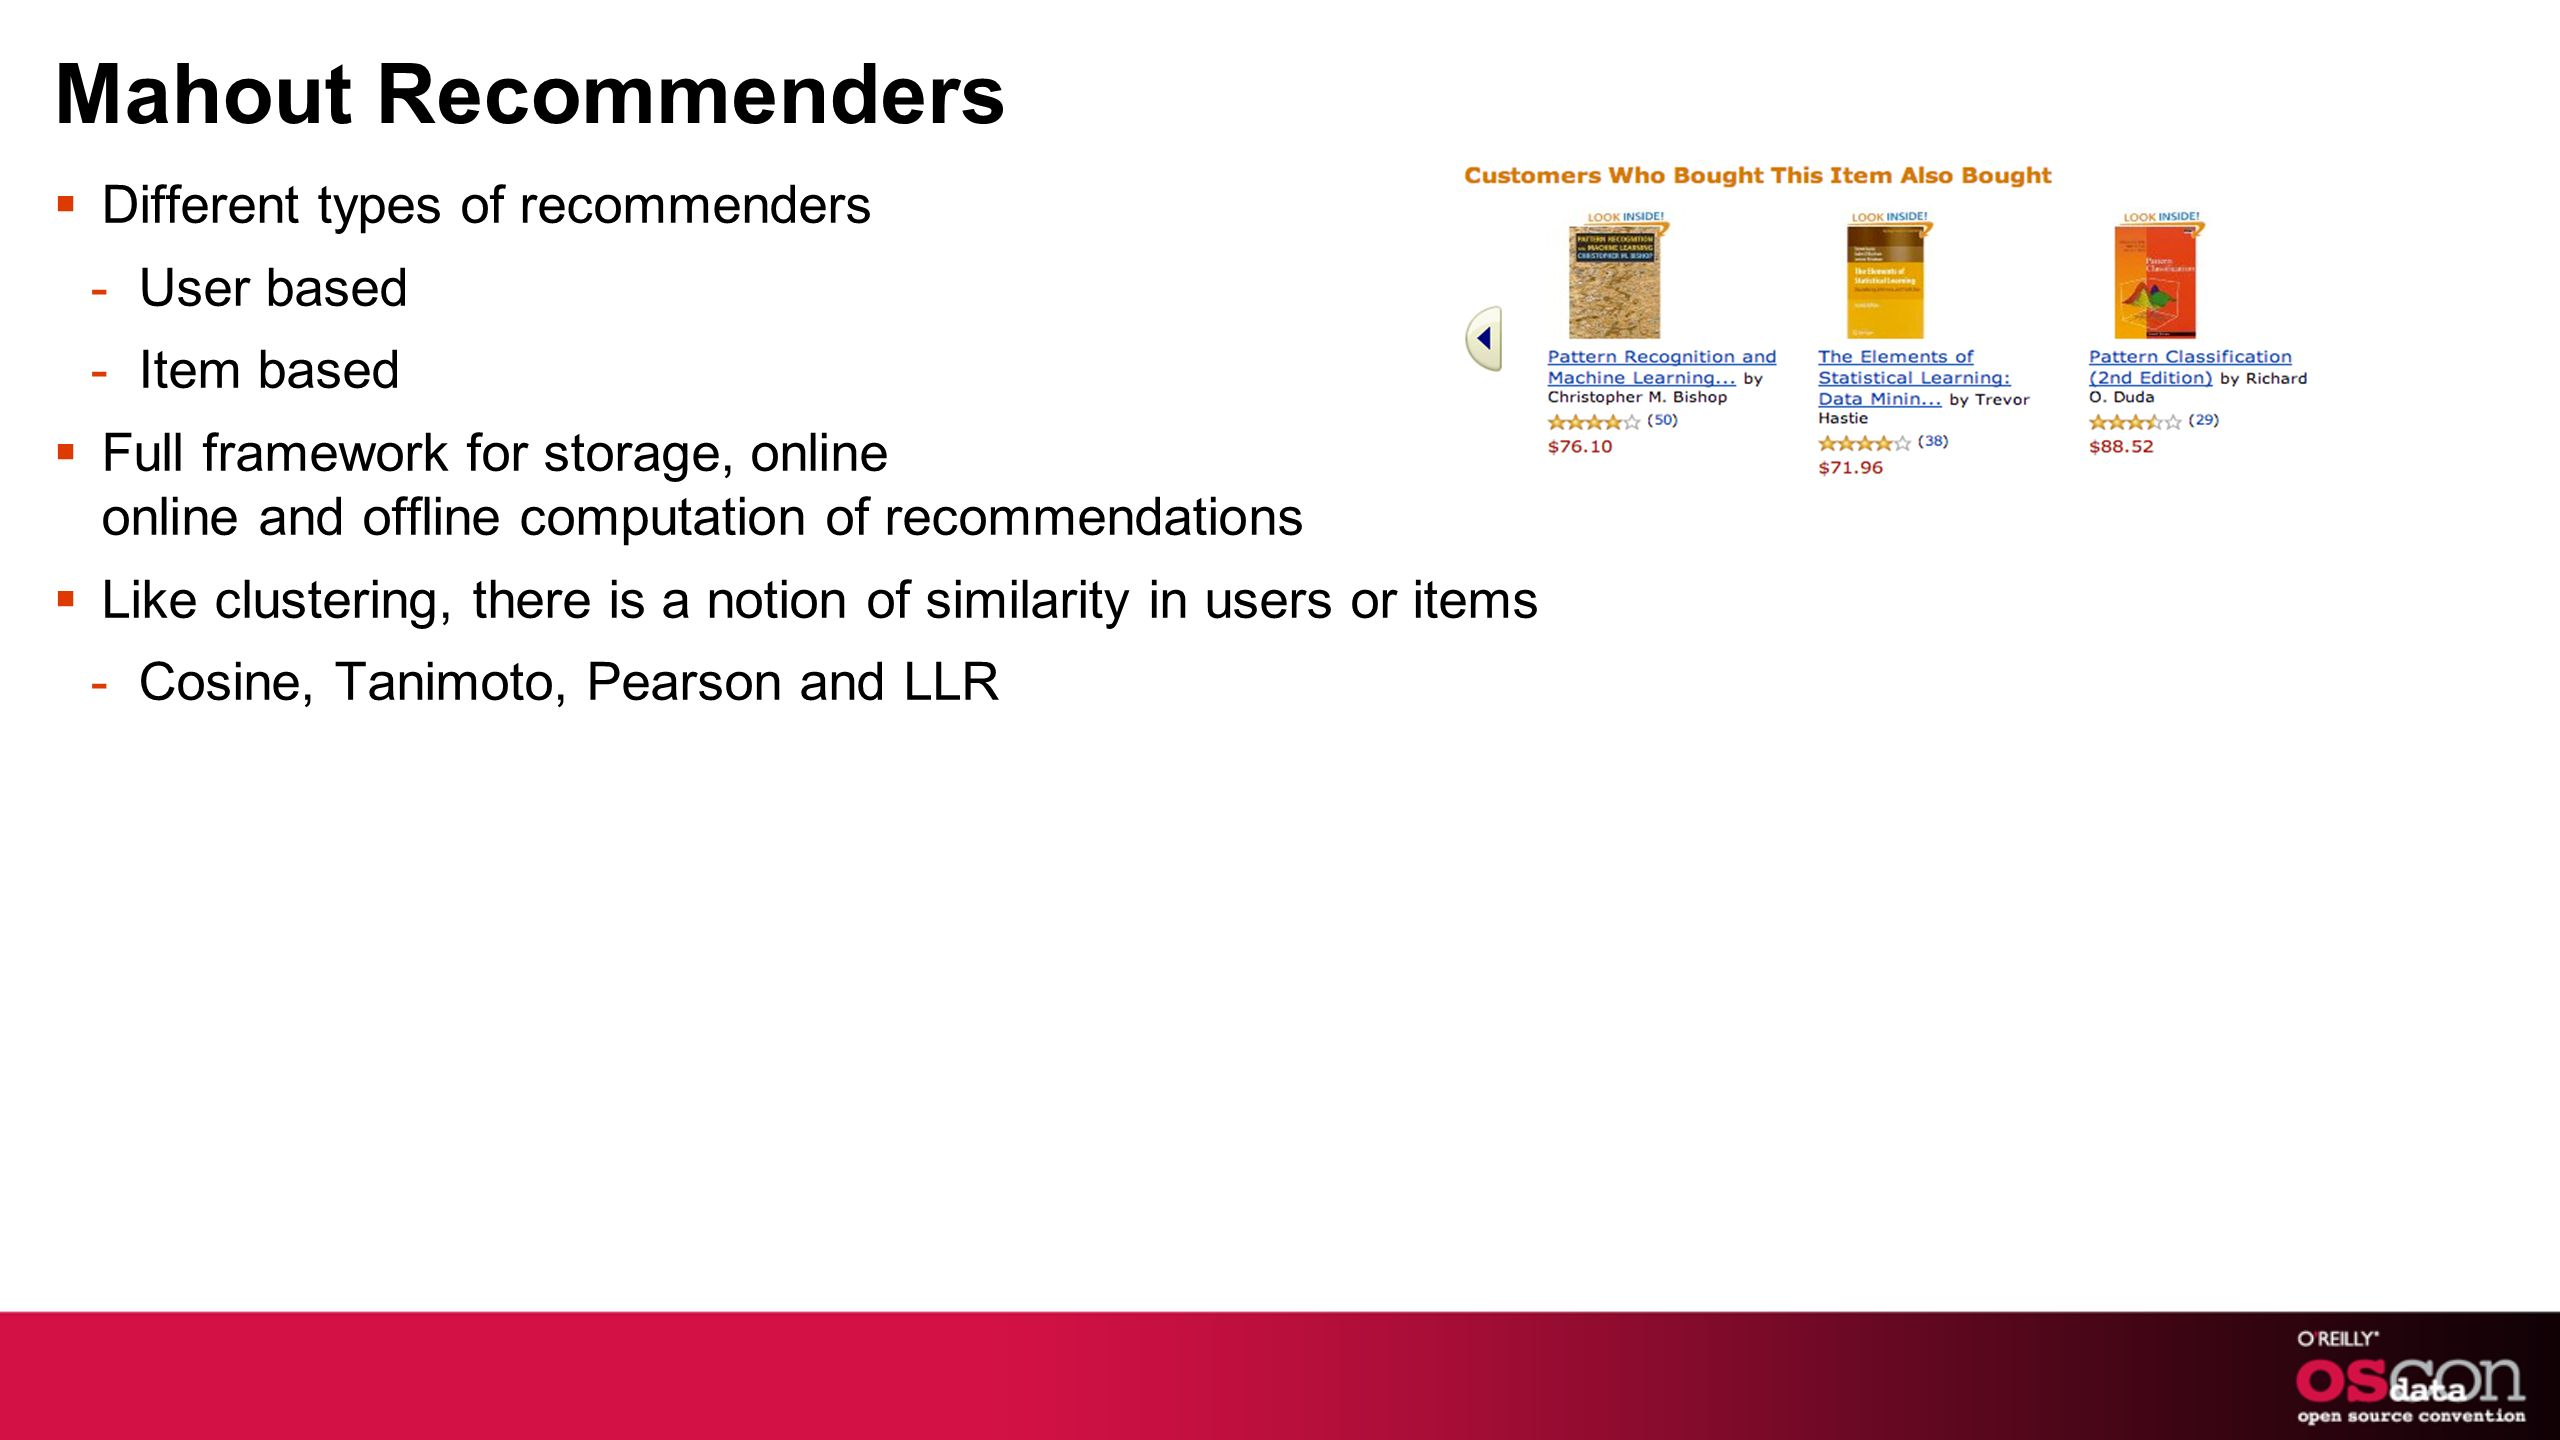 Mahout Recommenders Different types of recommenders -User based -Item based Full framework for storage, online online and offline computation of recommendations Like clustering, there is a notion of similarity in users or items -Cosine, Tanimoto, Pearson and LLR